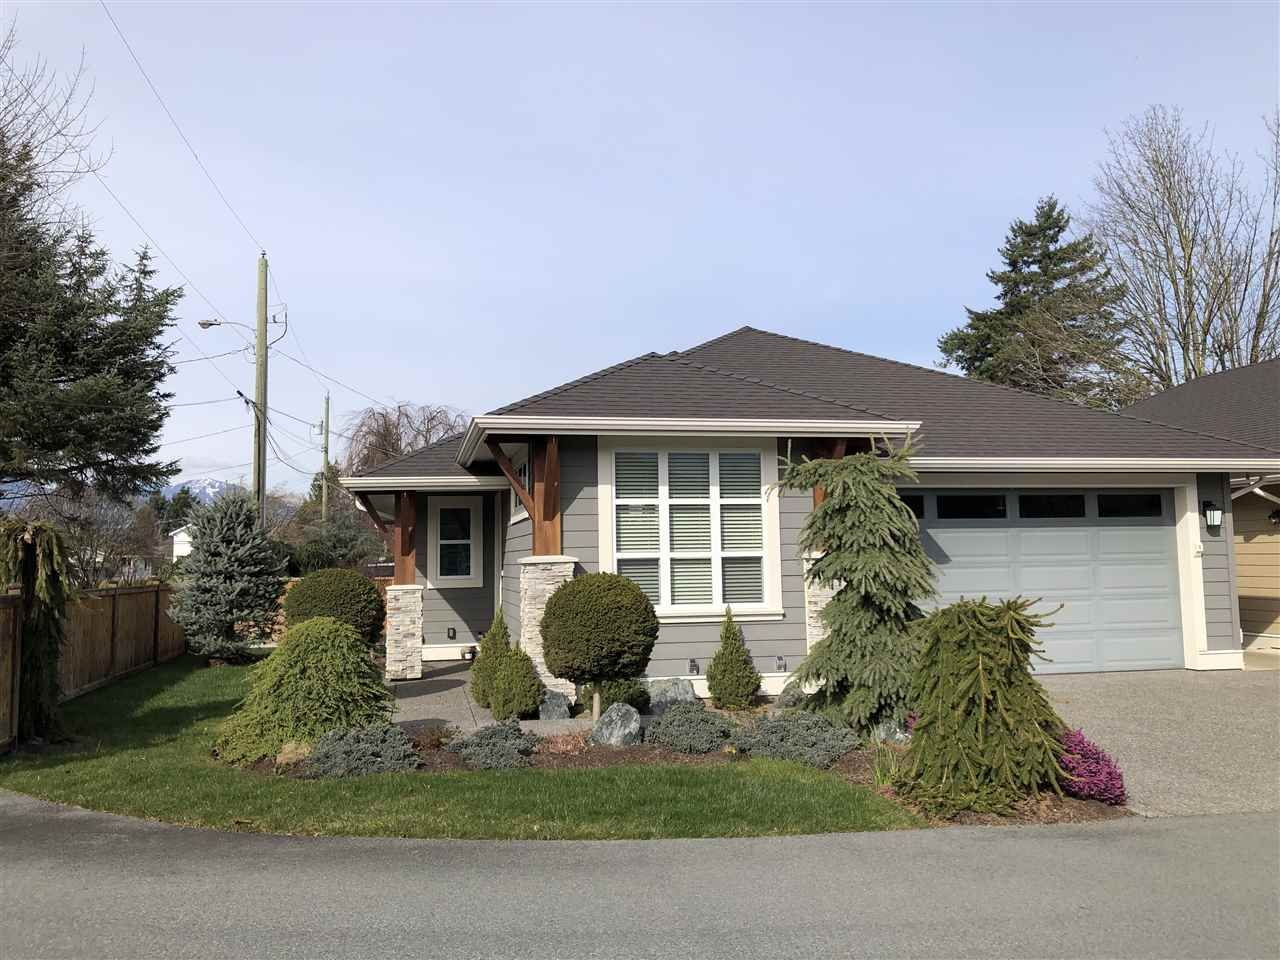 Main Photo: 101 6540 DOGWOOD Drive in Chilliwack: Sardis West Vedder Rd House for sale (Sardis)  : MLS®# R2552962